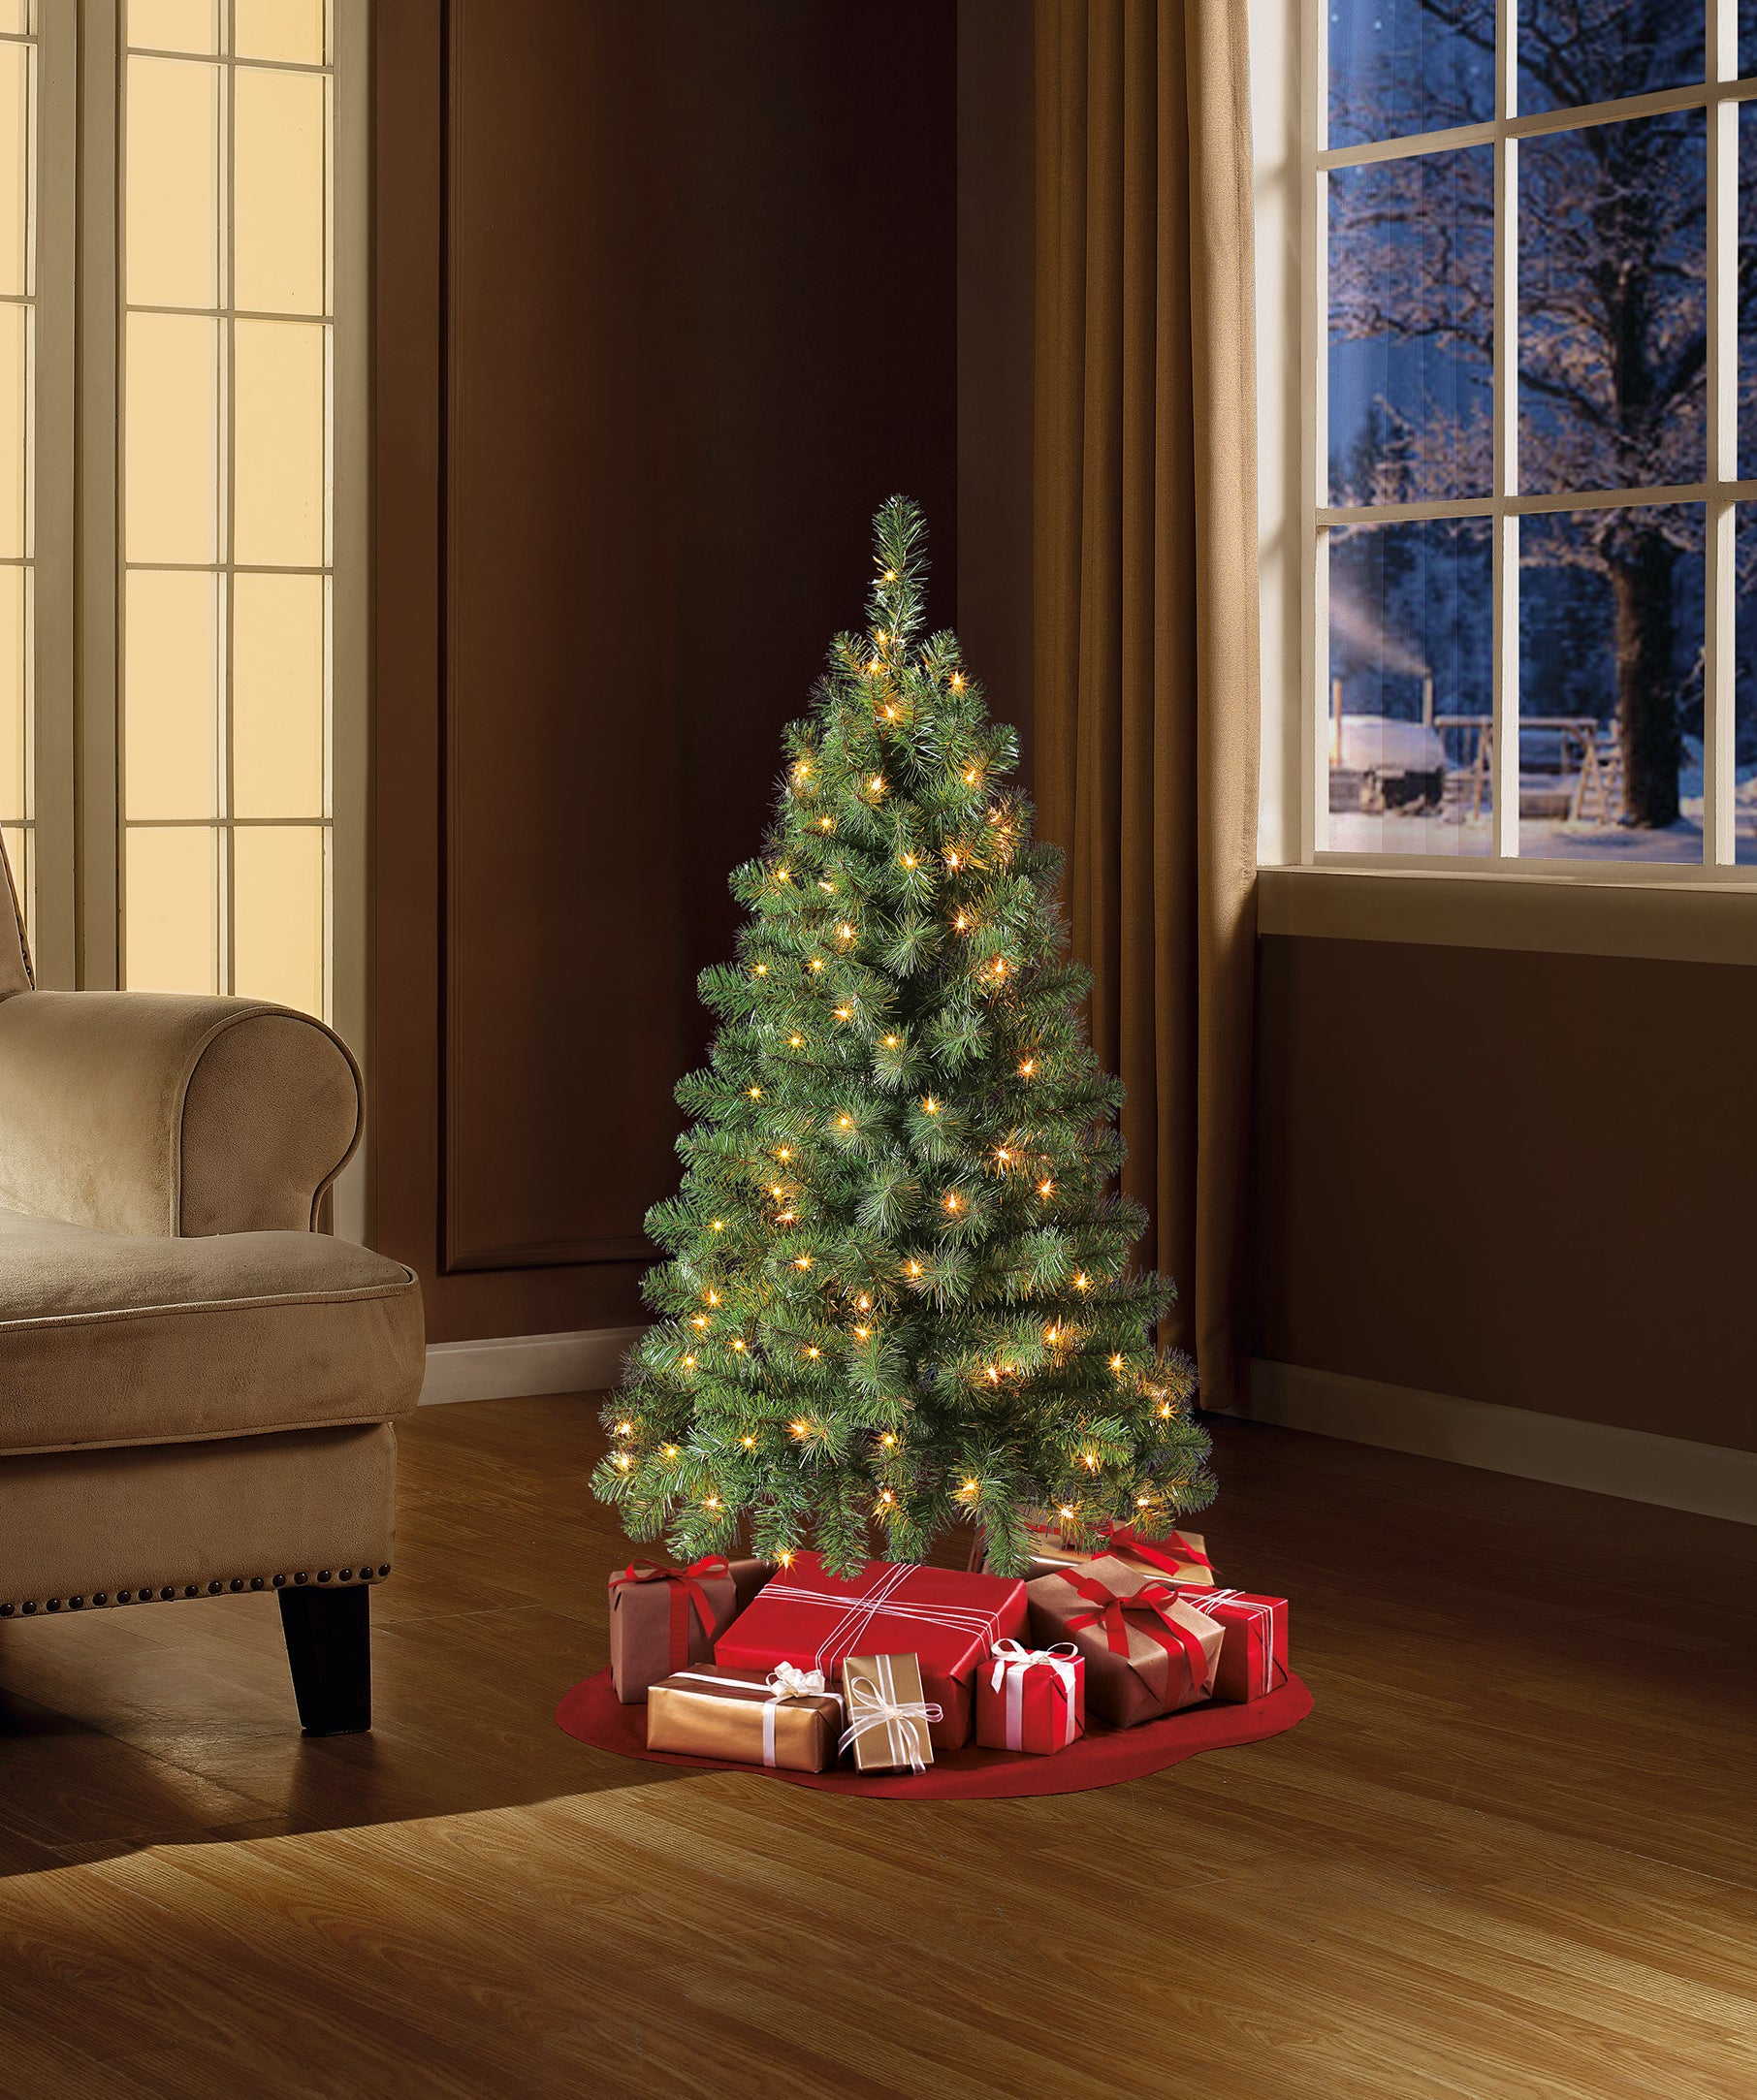 The Christmas tree placed beside a couch to show scale and size